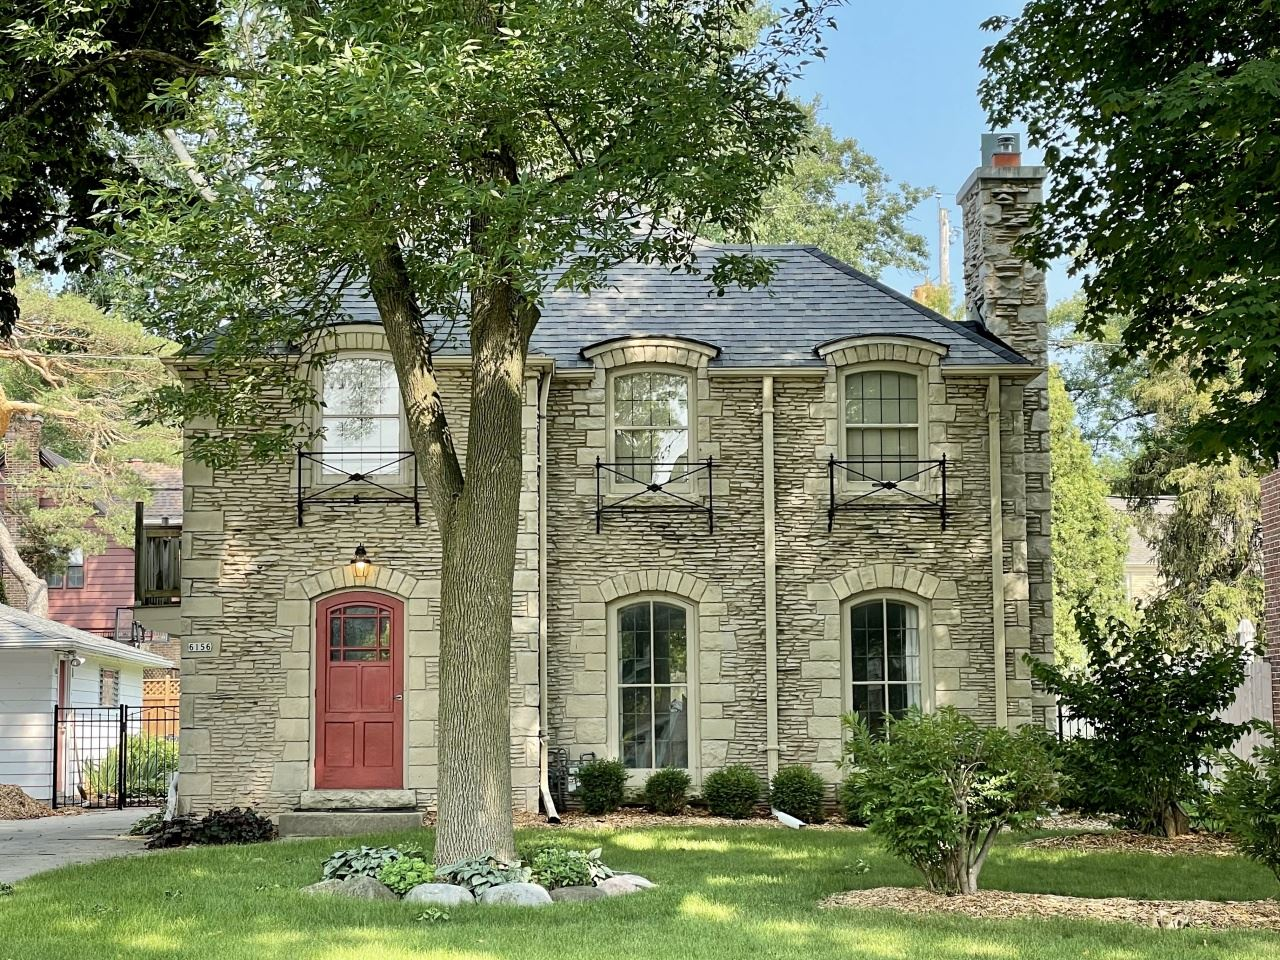 6156 N Lydell Ave, Whitefish Bay, WI 53217 - #: 1763680